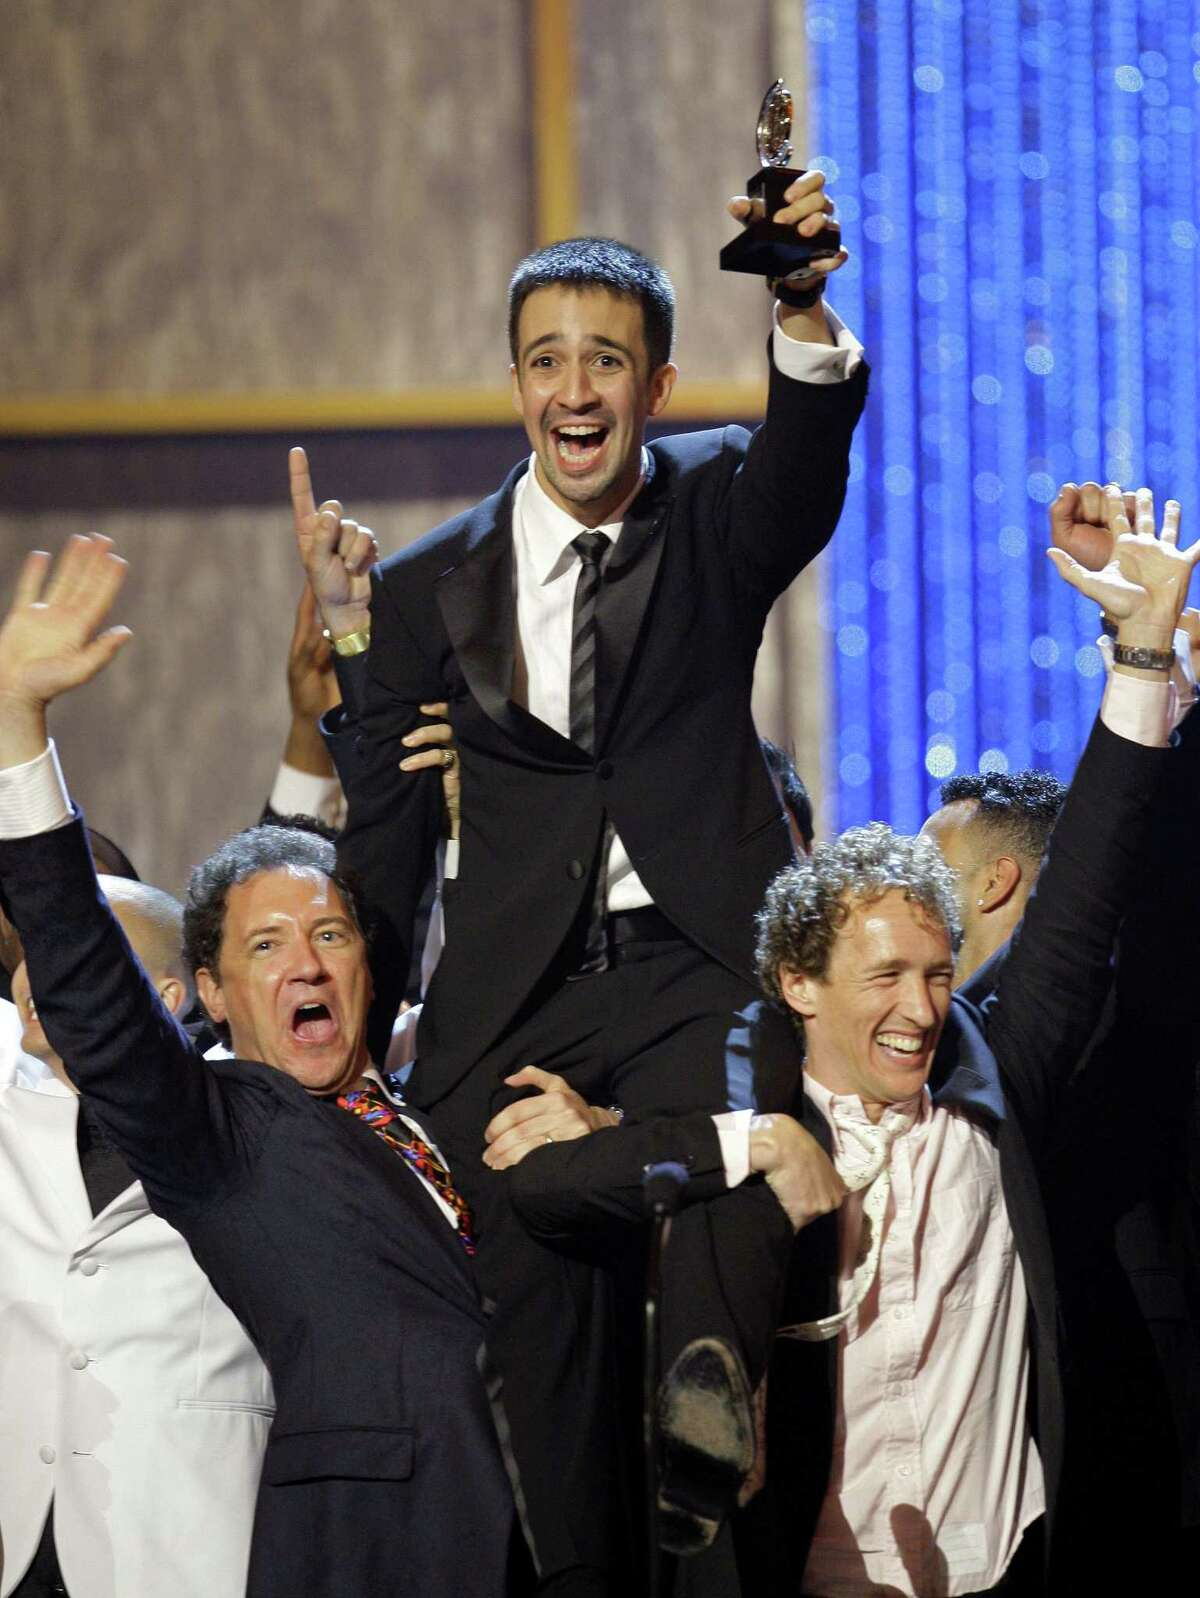 Lin-Manuel Miranda, center, is hoisted up on stage after